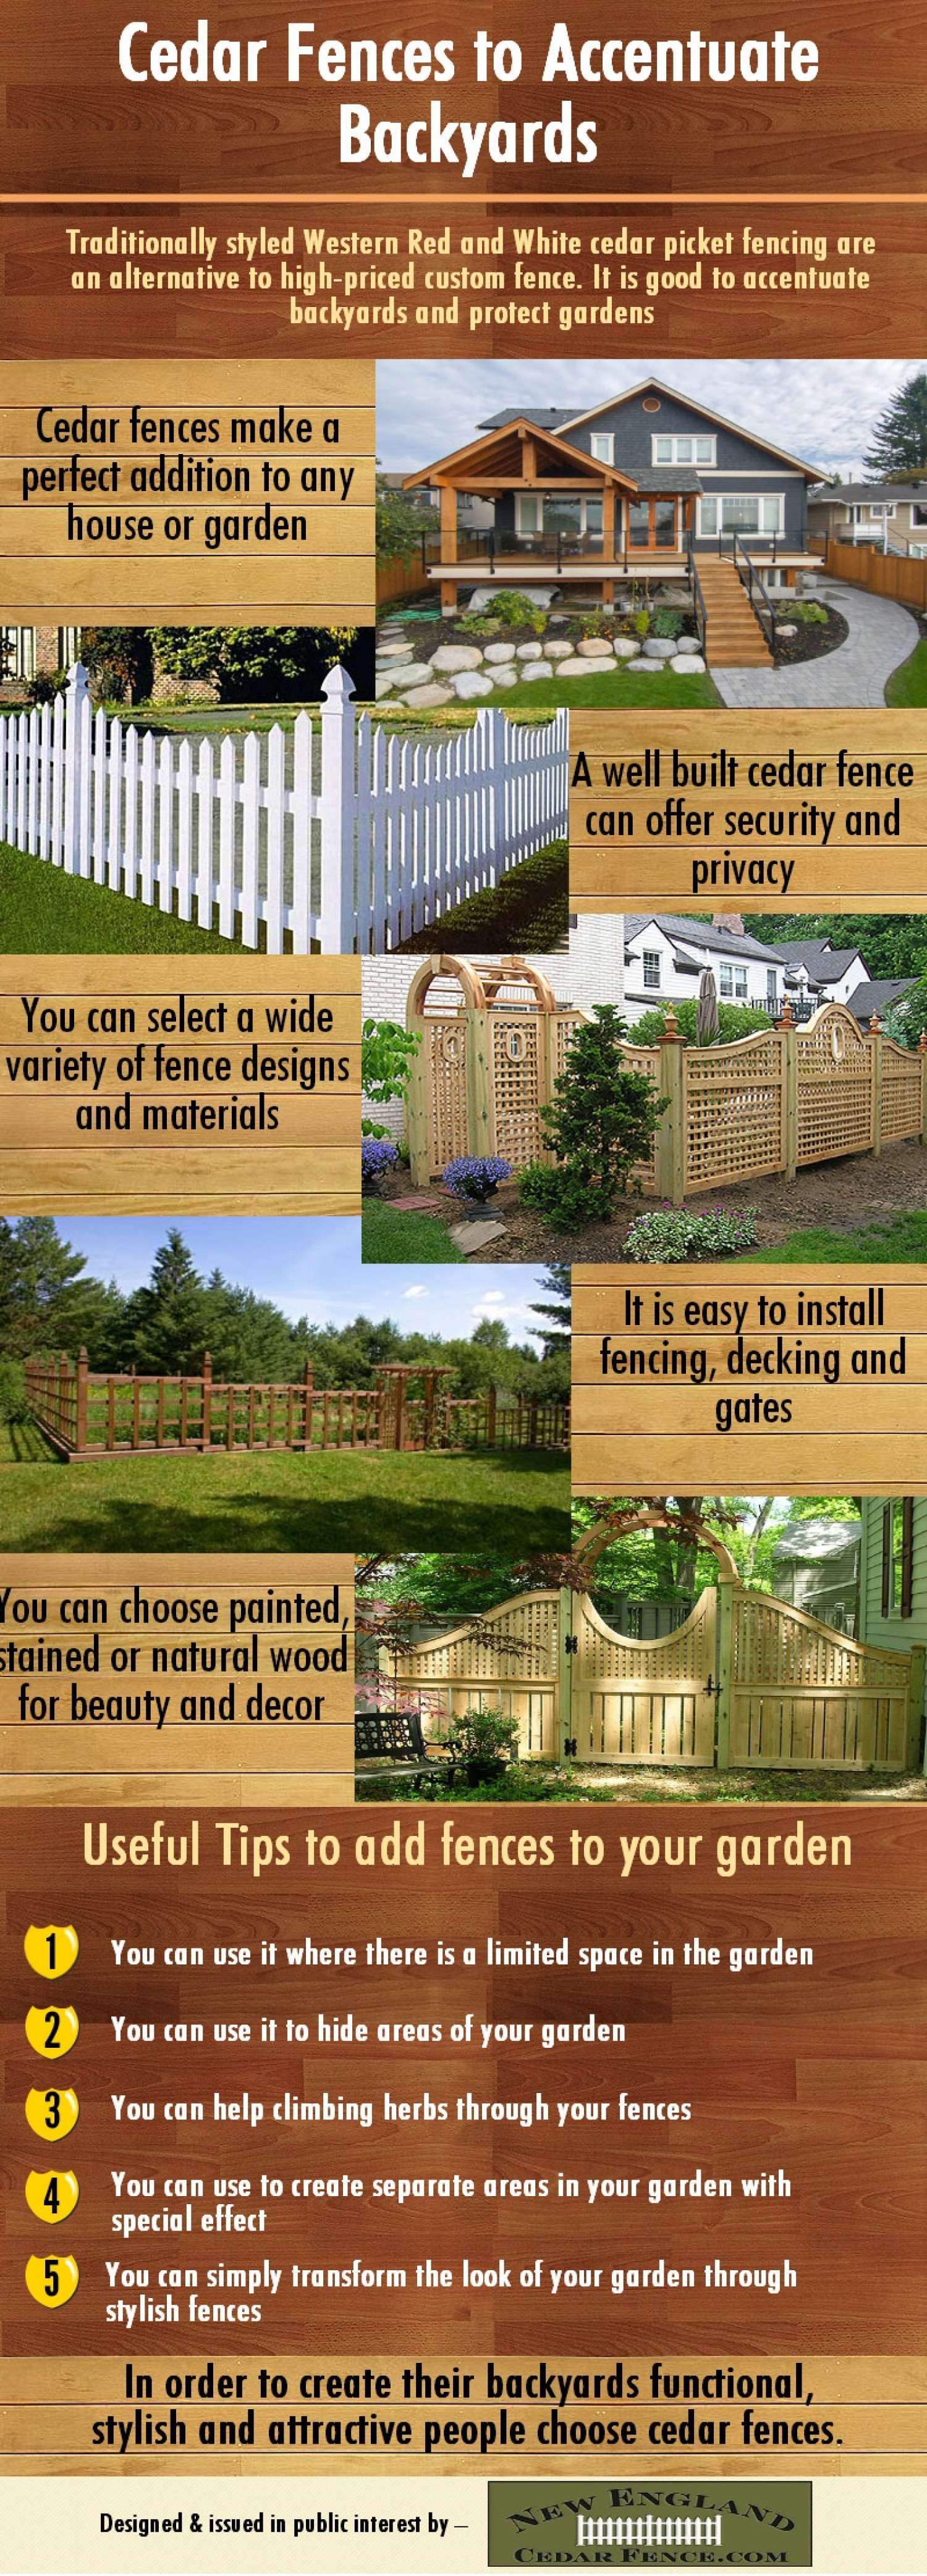 Cedar Fences to Accentuate Backyards Infographic